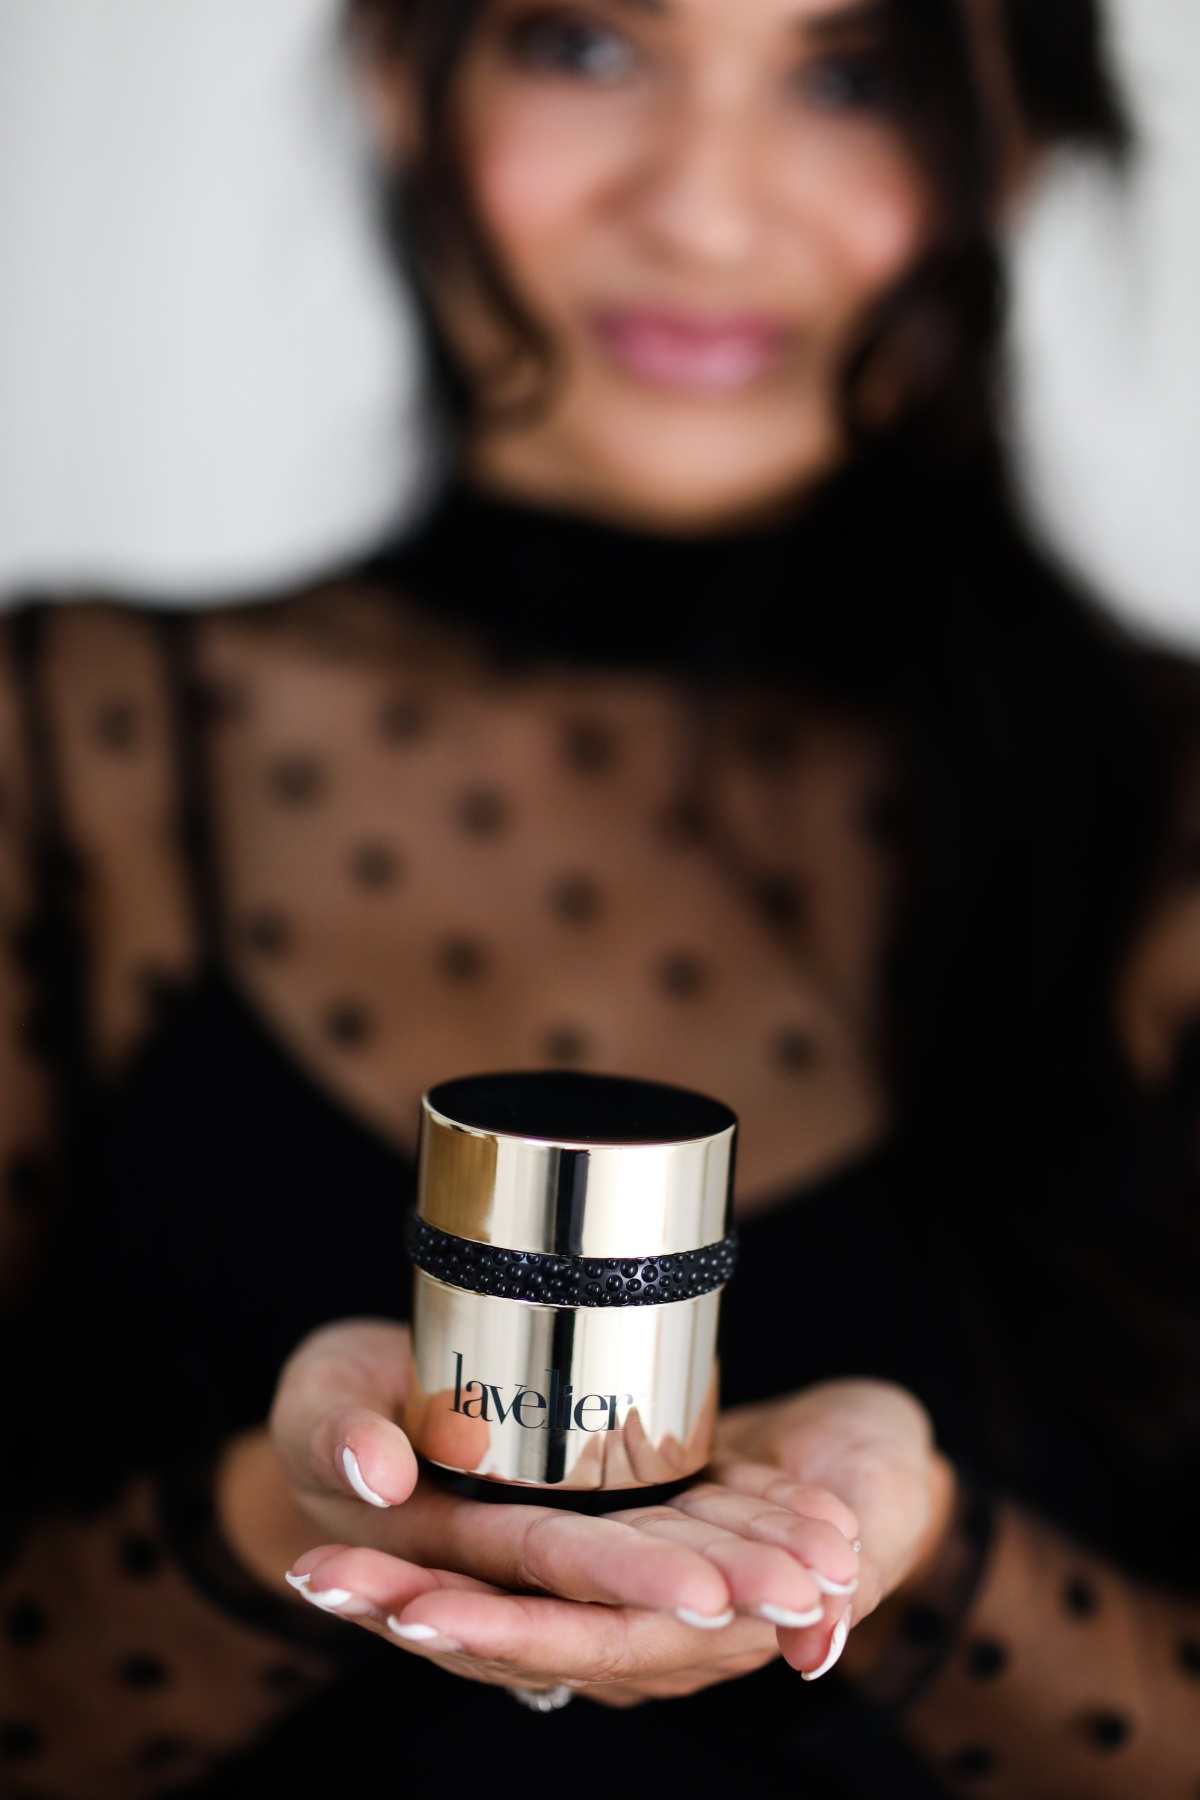 3 Marine-Based Skincare Products to Get Your Skin Ready for Fall - Lavelier